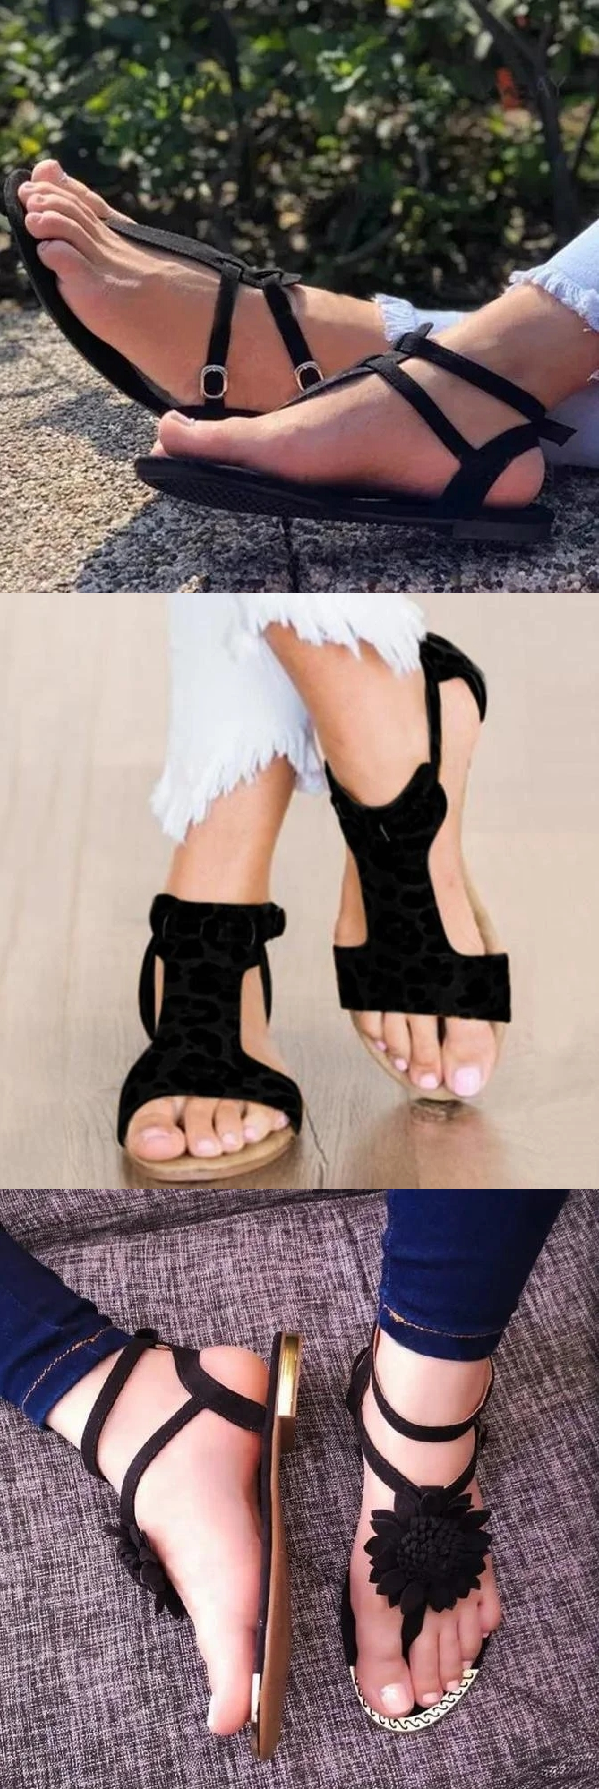 2020 Hot Selling Sandals. 5% OFF Code: (5new) for First Order. Free Shipping! Shop Now!